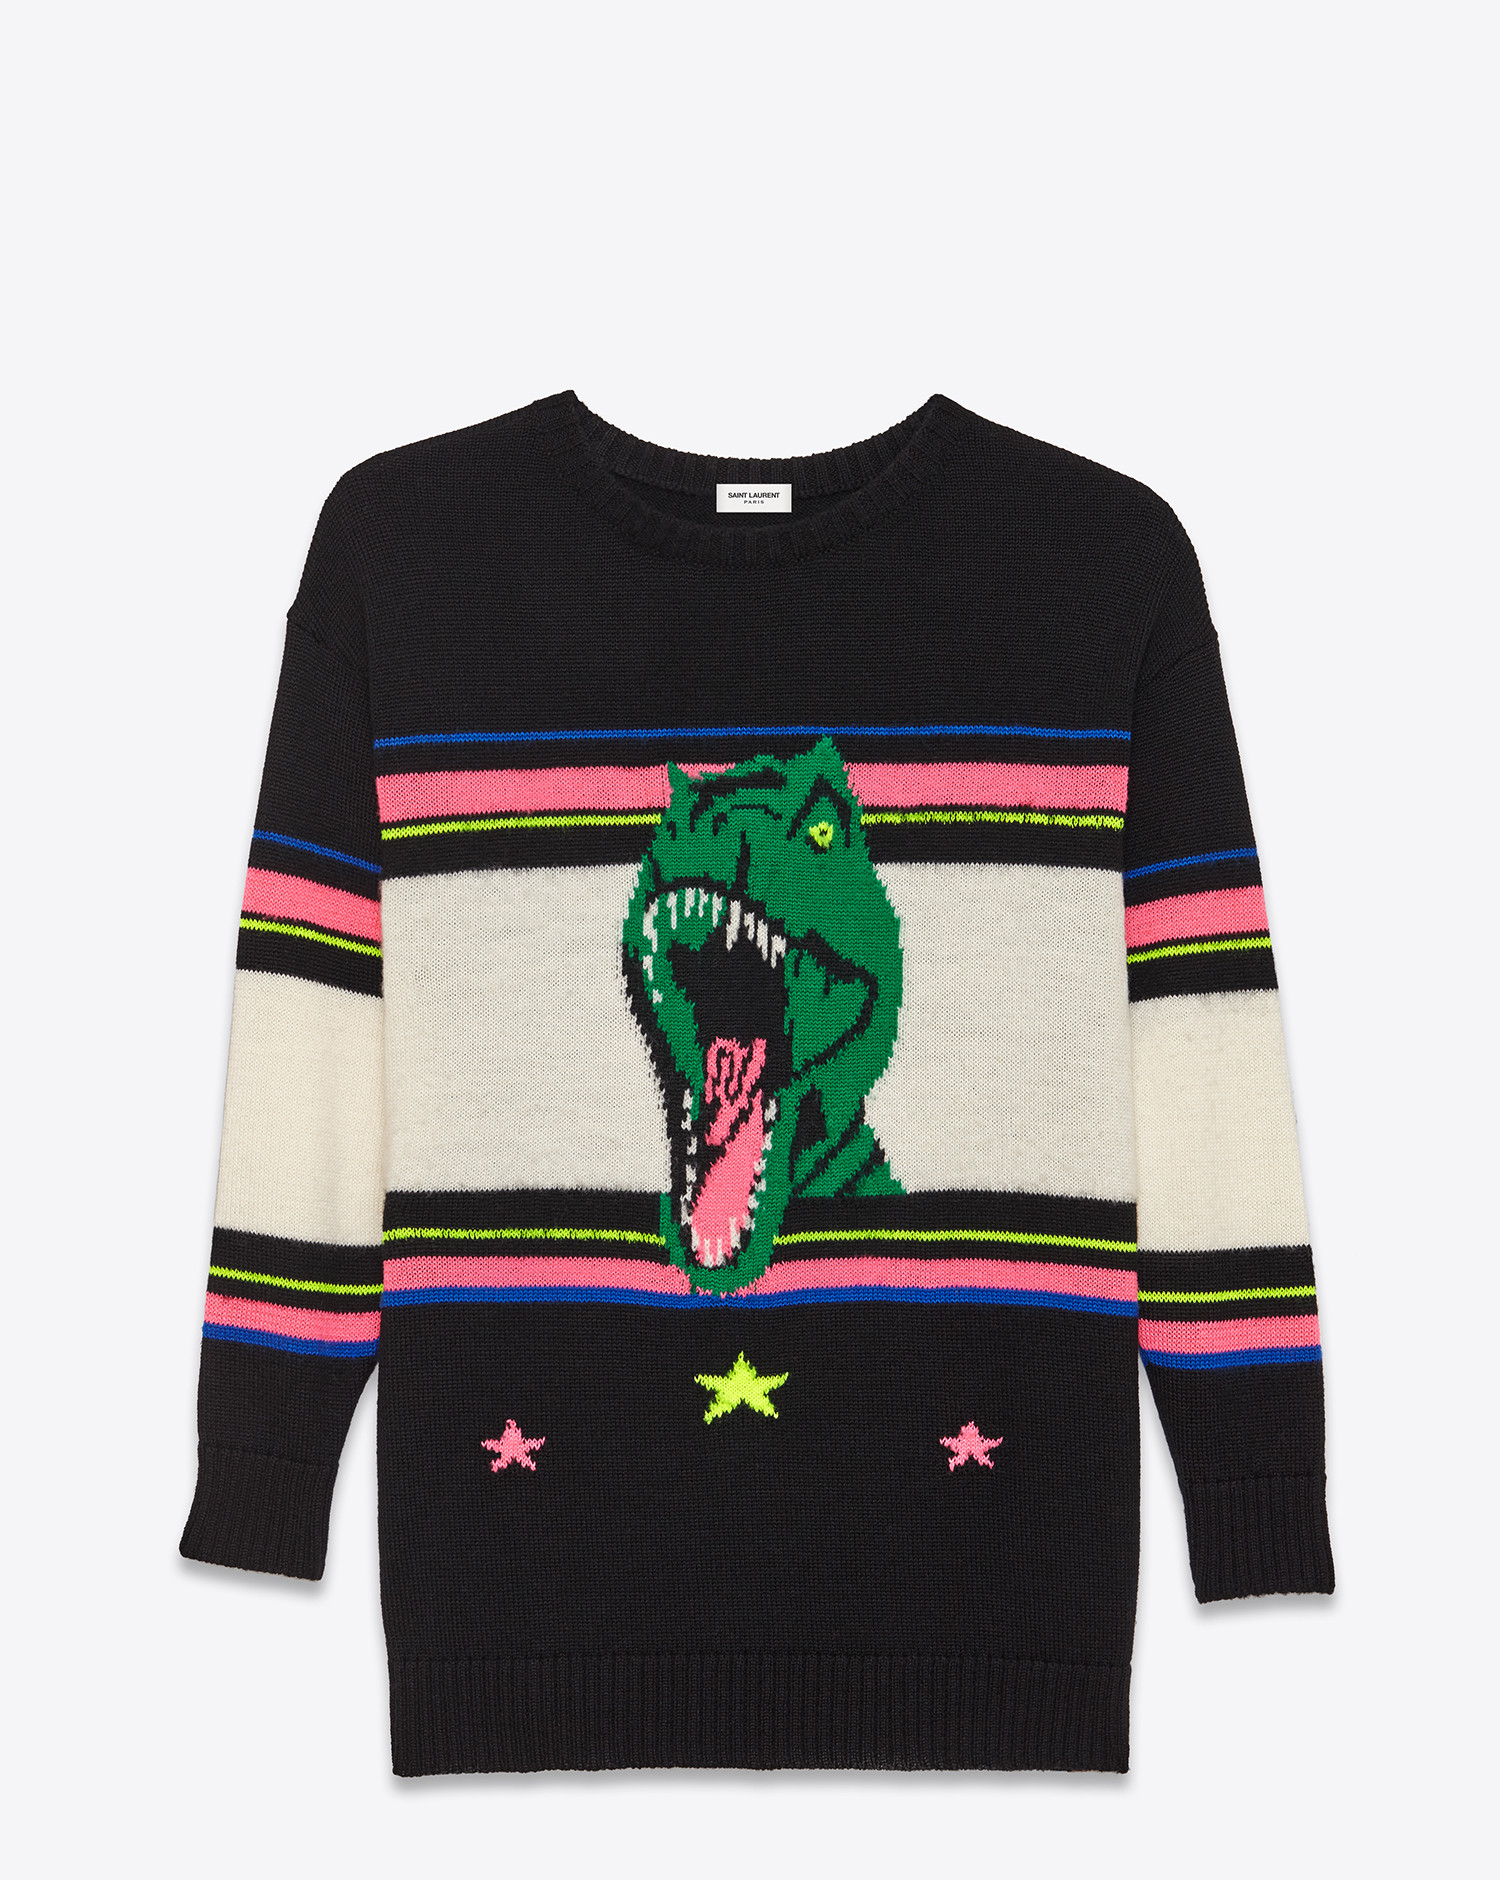 14d91ffc4f Christmas outfit ideas? - Page 2 « Kanye West Forum